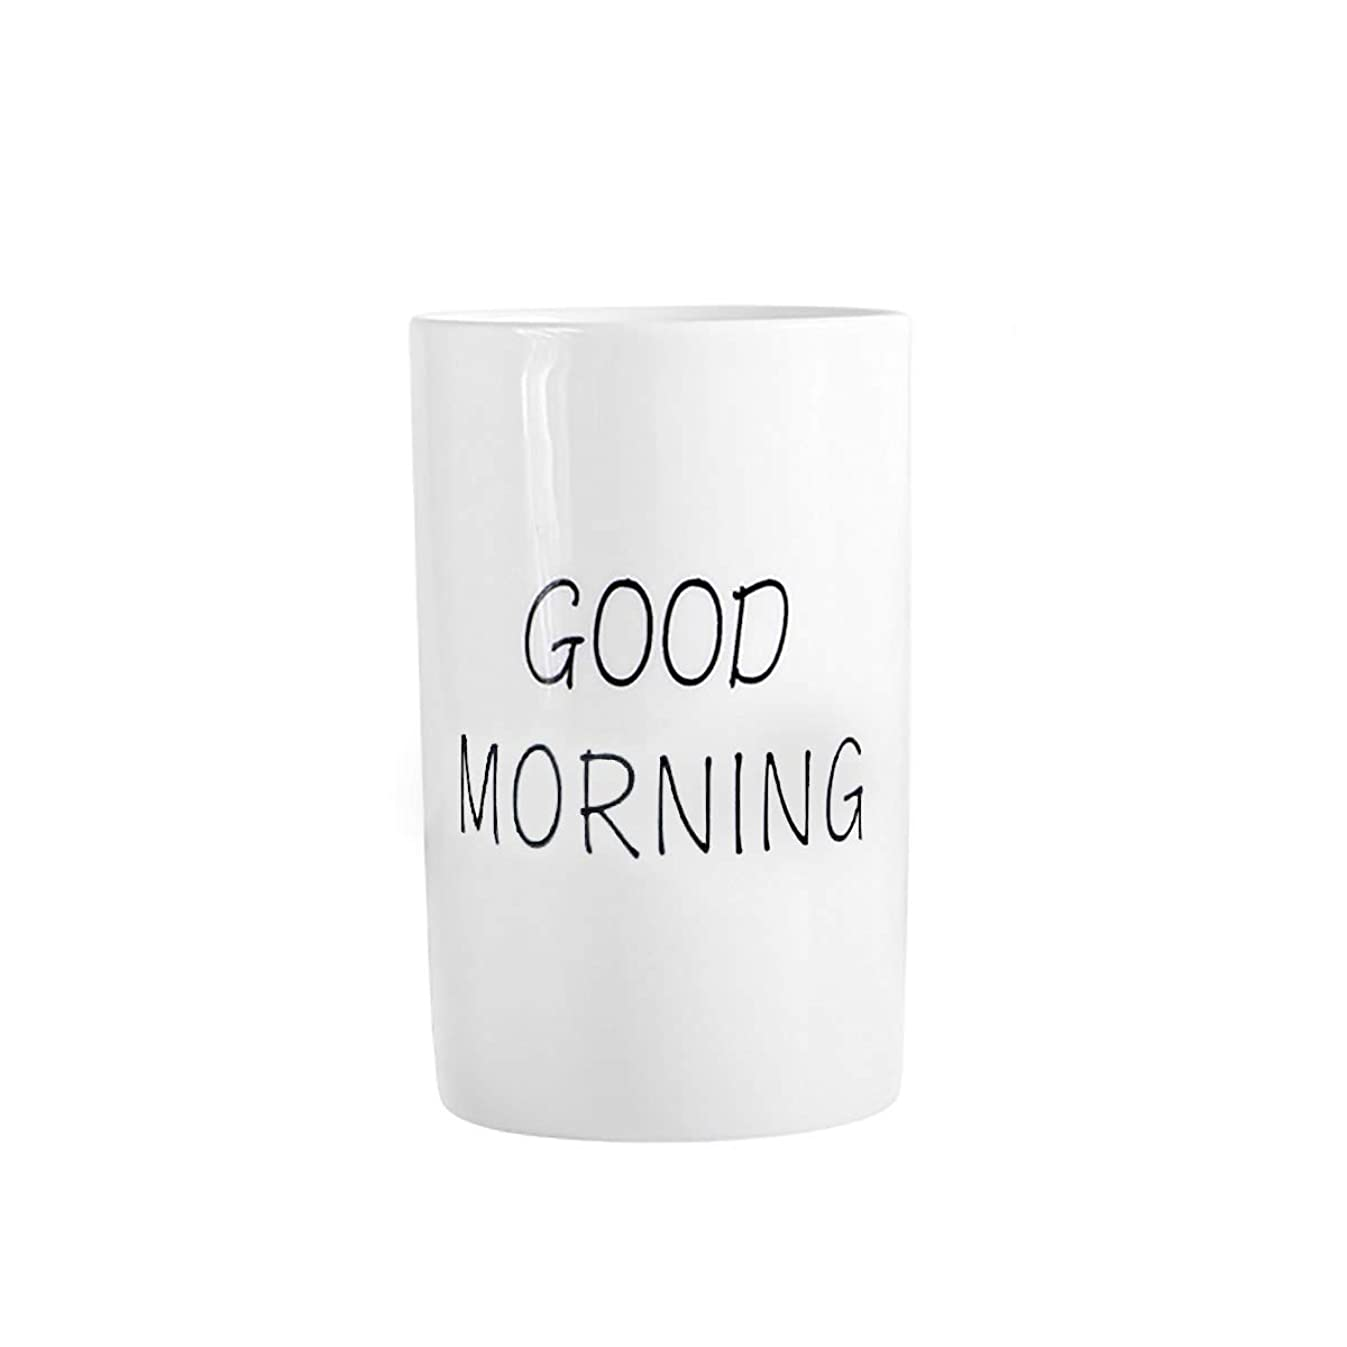 Ceramic Tumbler Cup for Bathroom Toothbrush,Water,Milk,Toothpaste (Good Morning Cup)